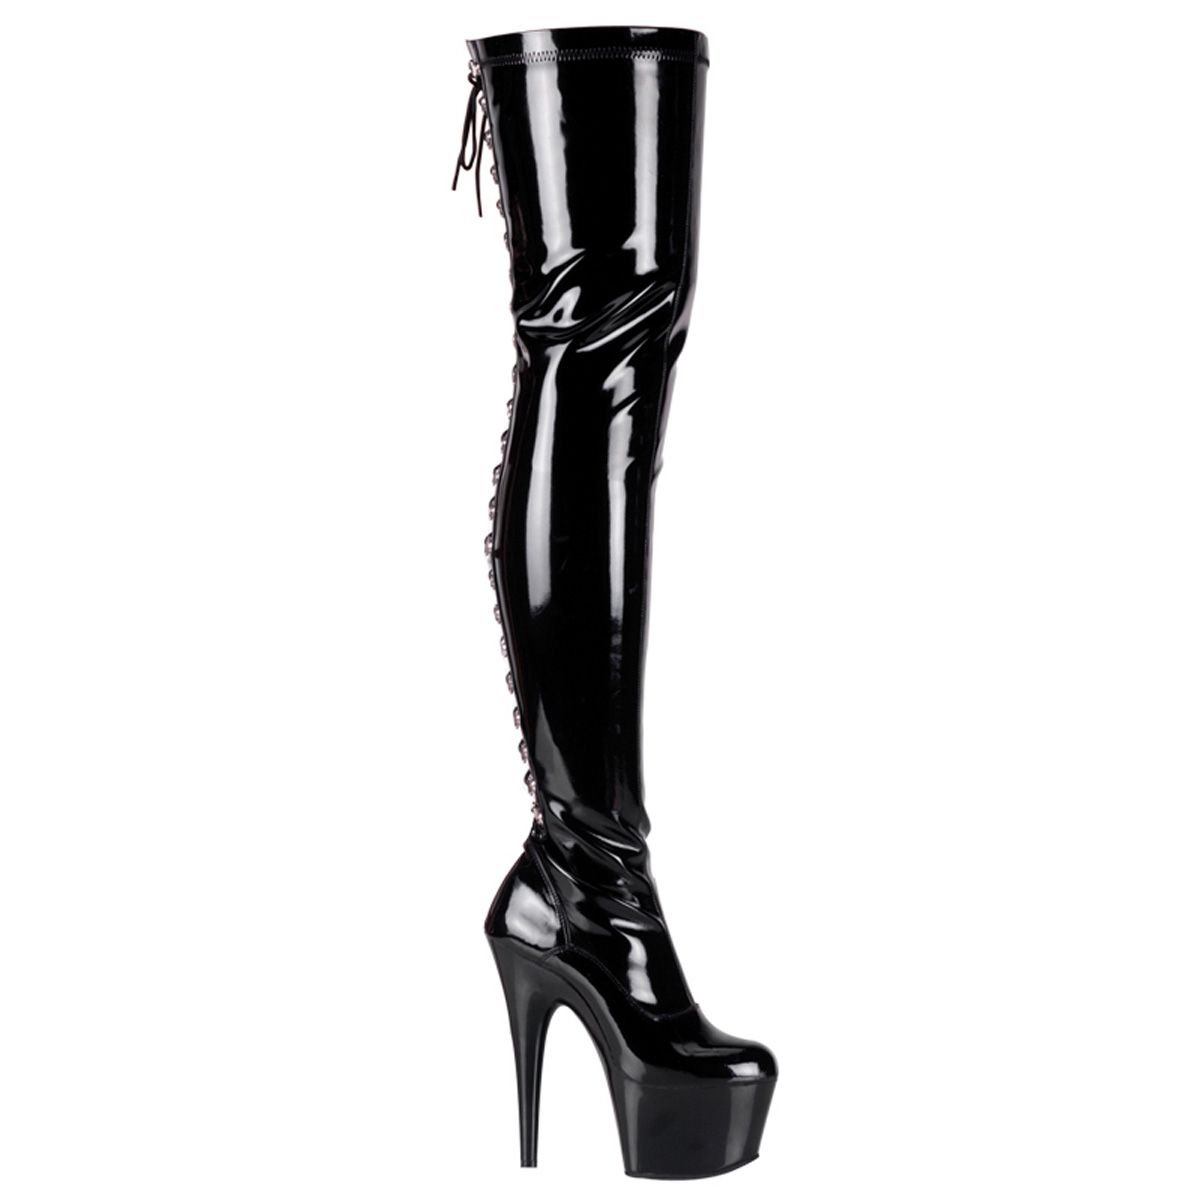 Pleaser Shoes Women's ADORE-3063, 6-1/2'' Rear Lace-Up Stretch Platform Thigh Boot, Side Zip - Black/Black at Sears.com